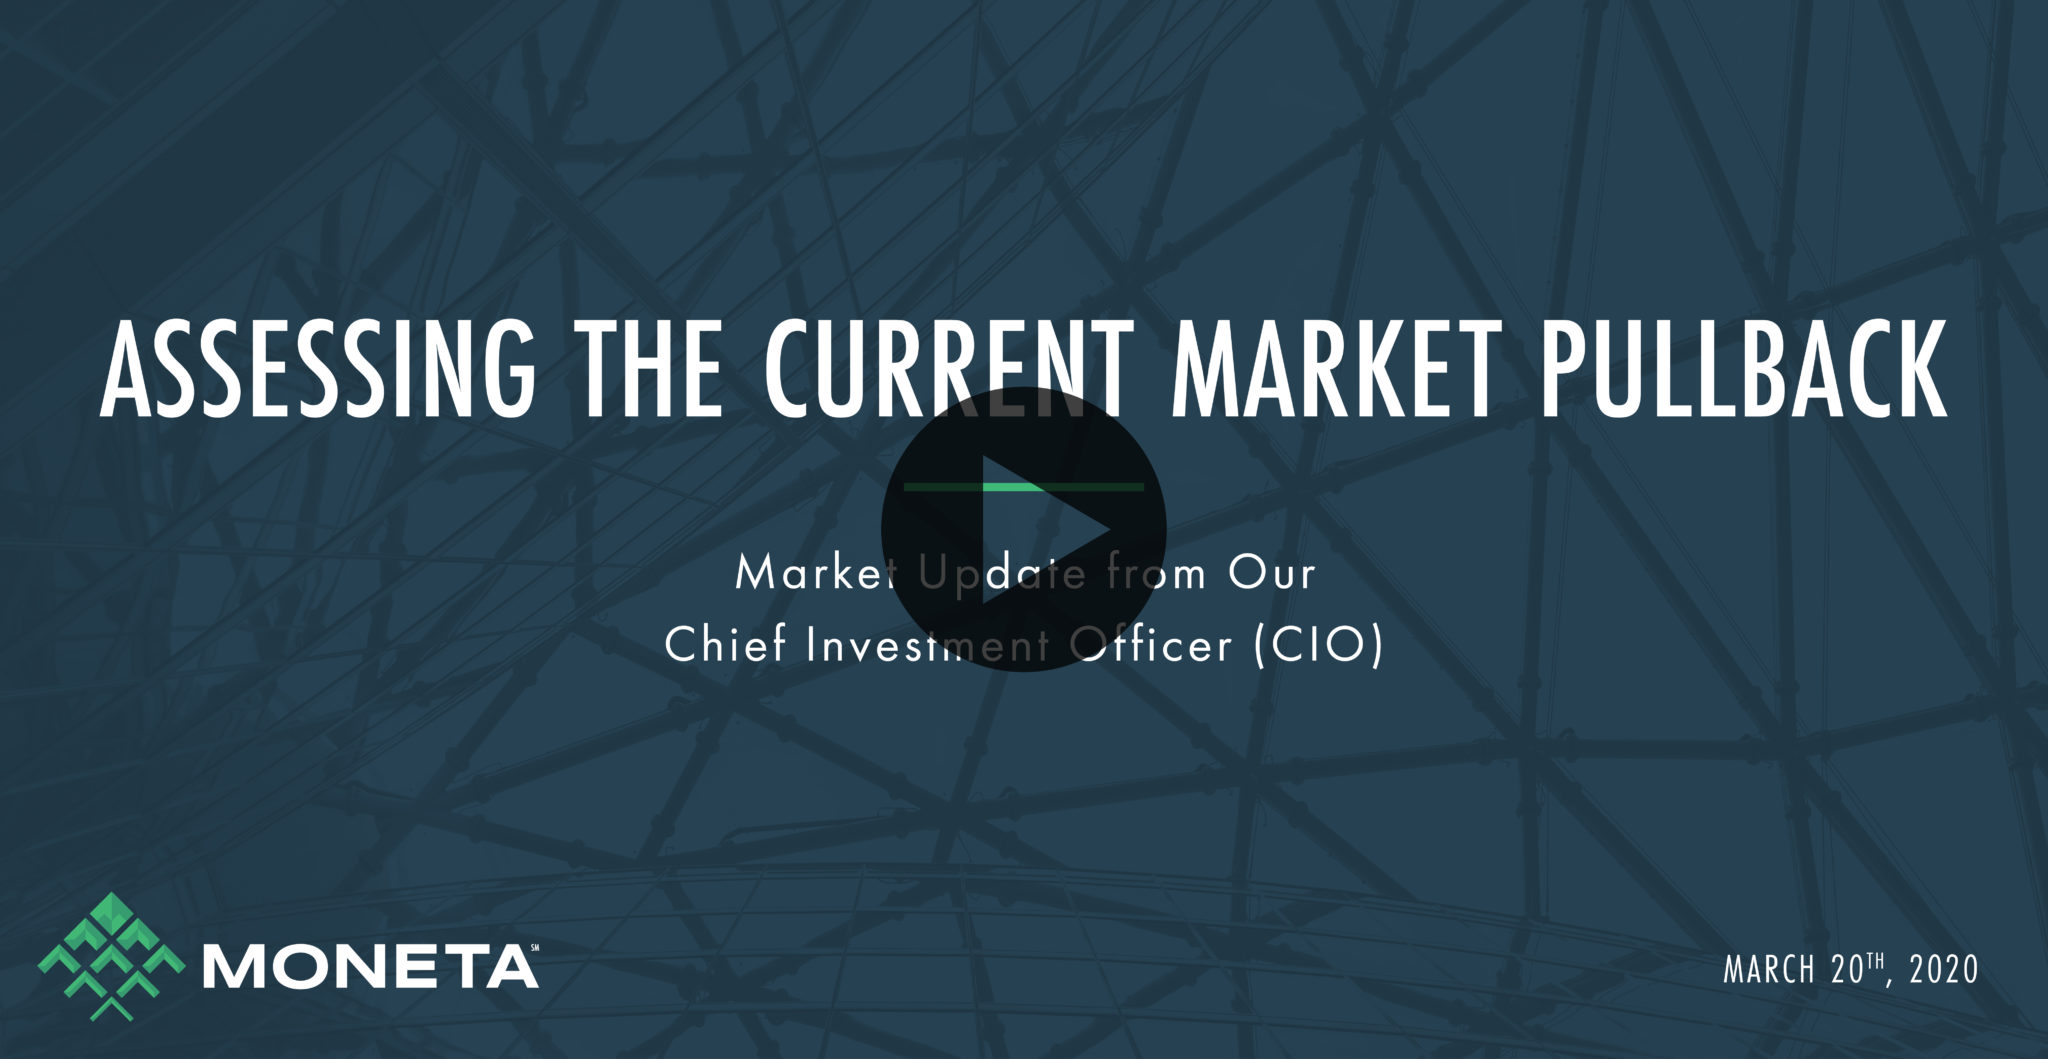 VIDEO: Assessing the current market pullback